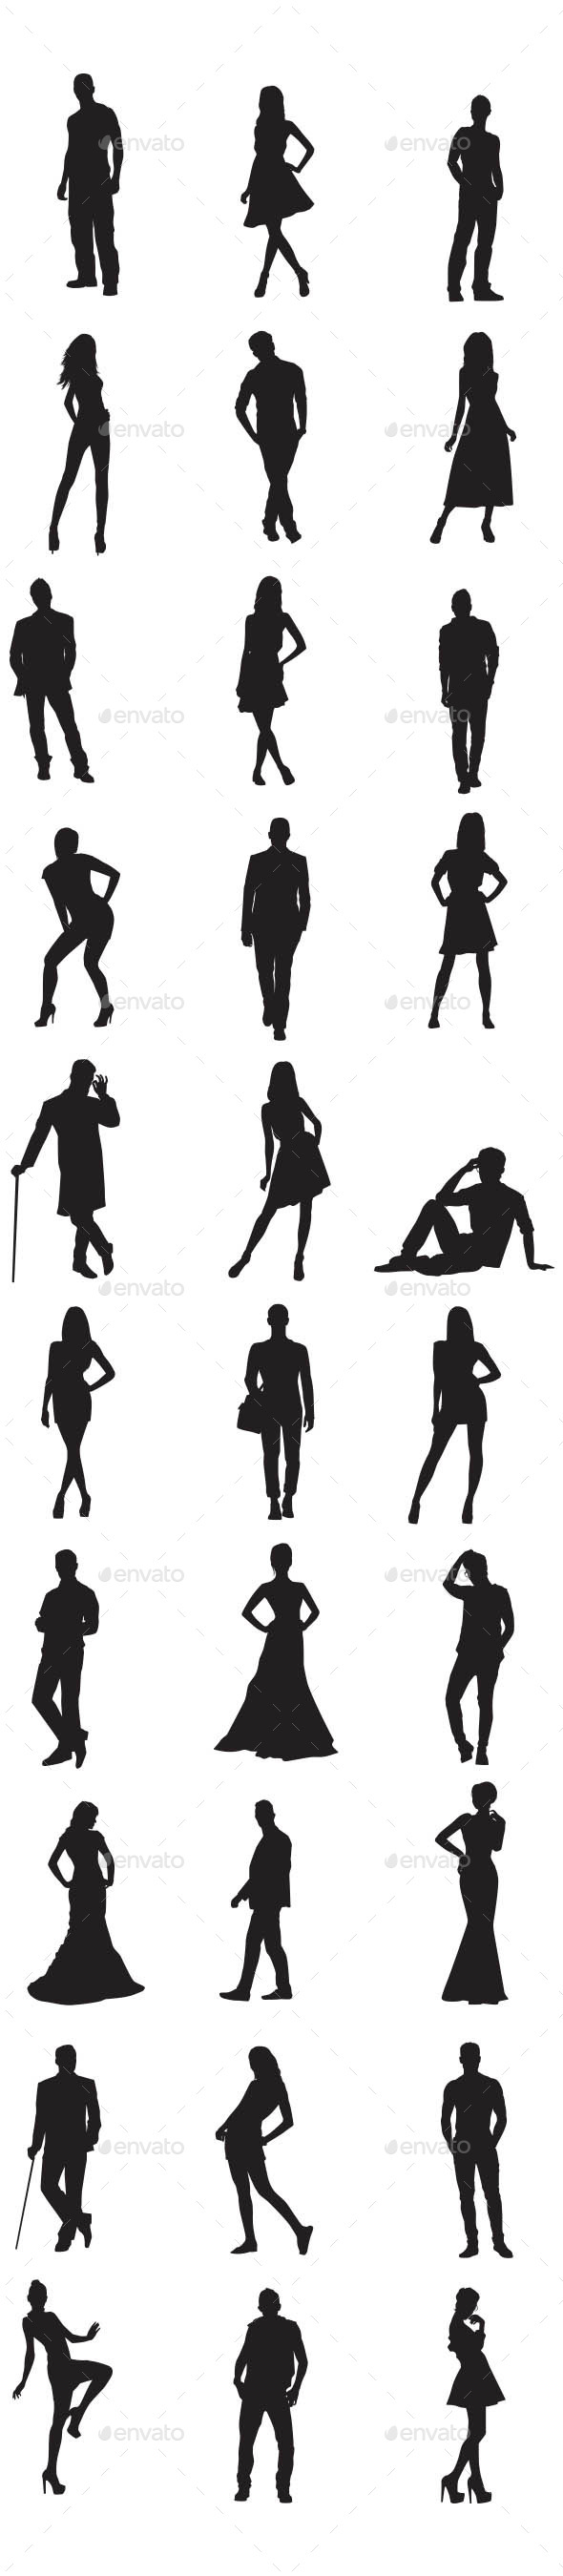 GraphicRiver People Silhouettes 10117874